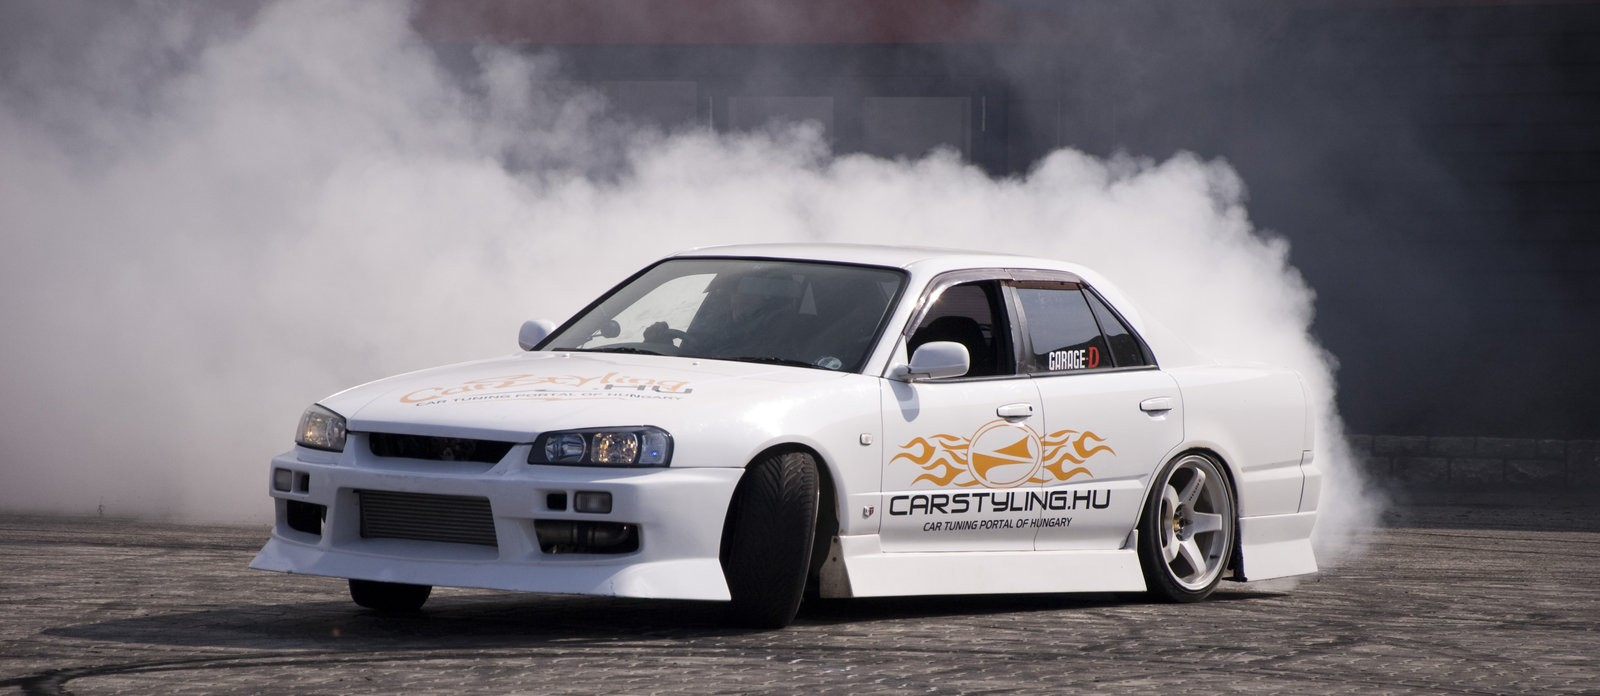 Download Drifting Car 173448 Auto Amp Vehicles Mobile Wallpapers 1600x696